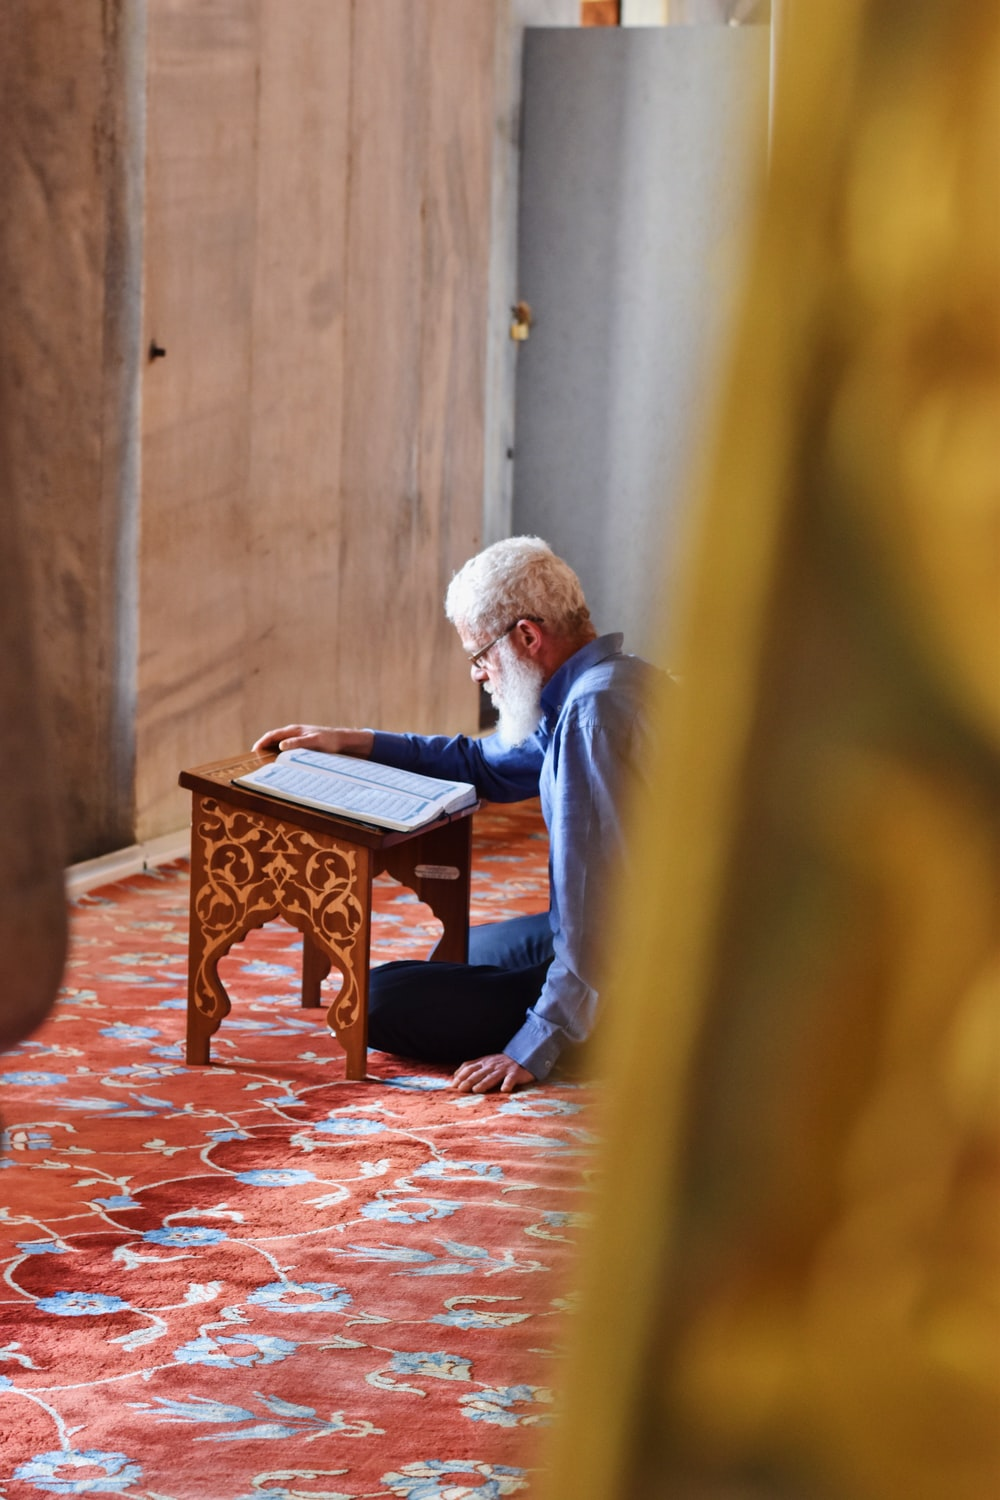 man sitting on area rug reading book on book stand